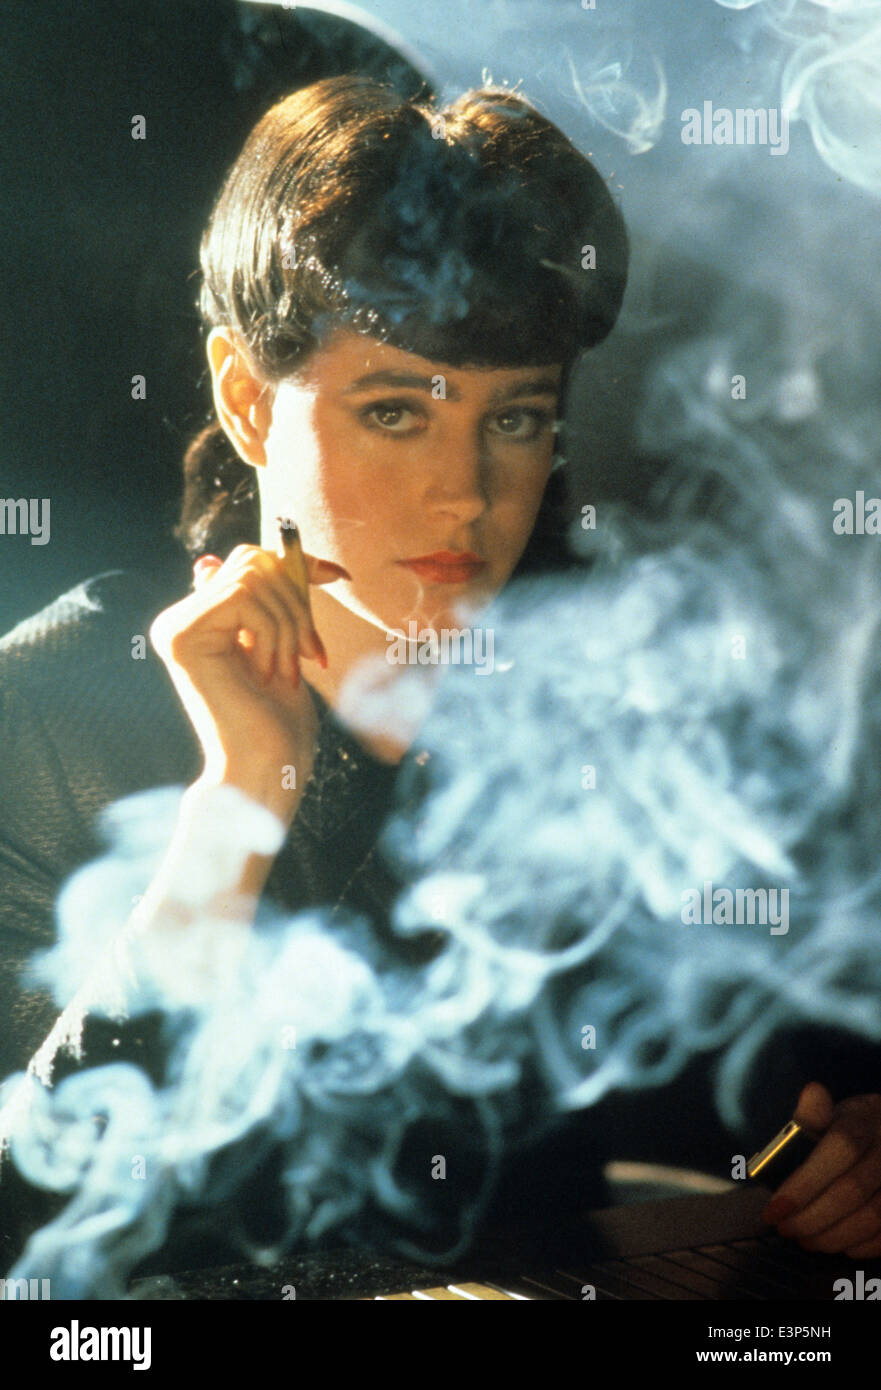 BLADE RUNNER 1982 Ladd Company/Warner Bros film with Sean Young - Stock Image